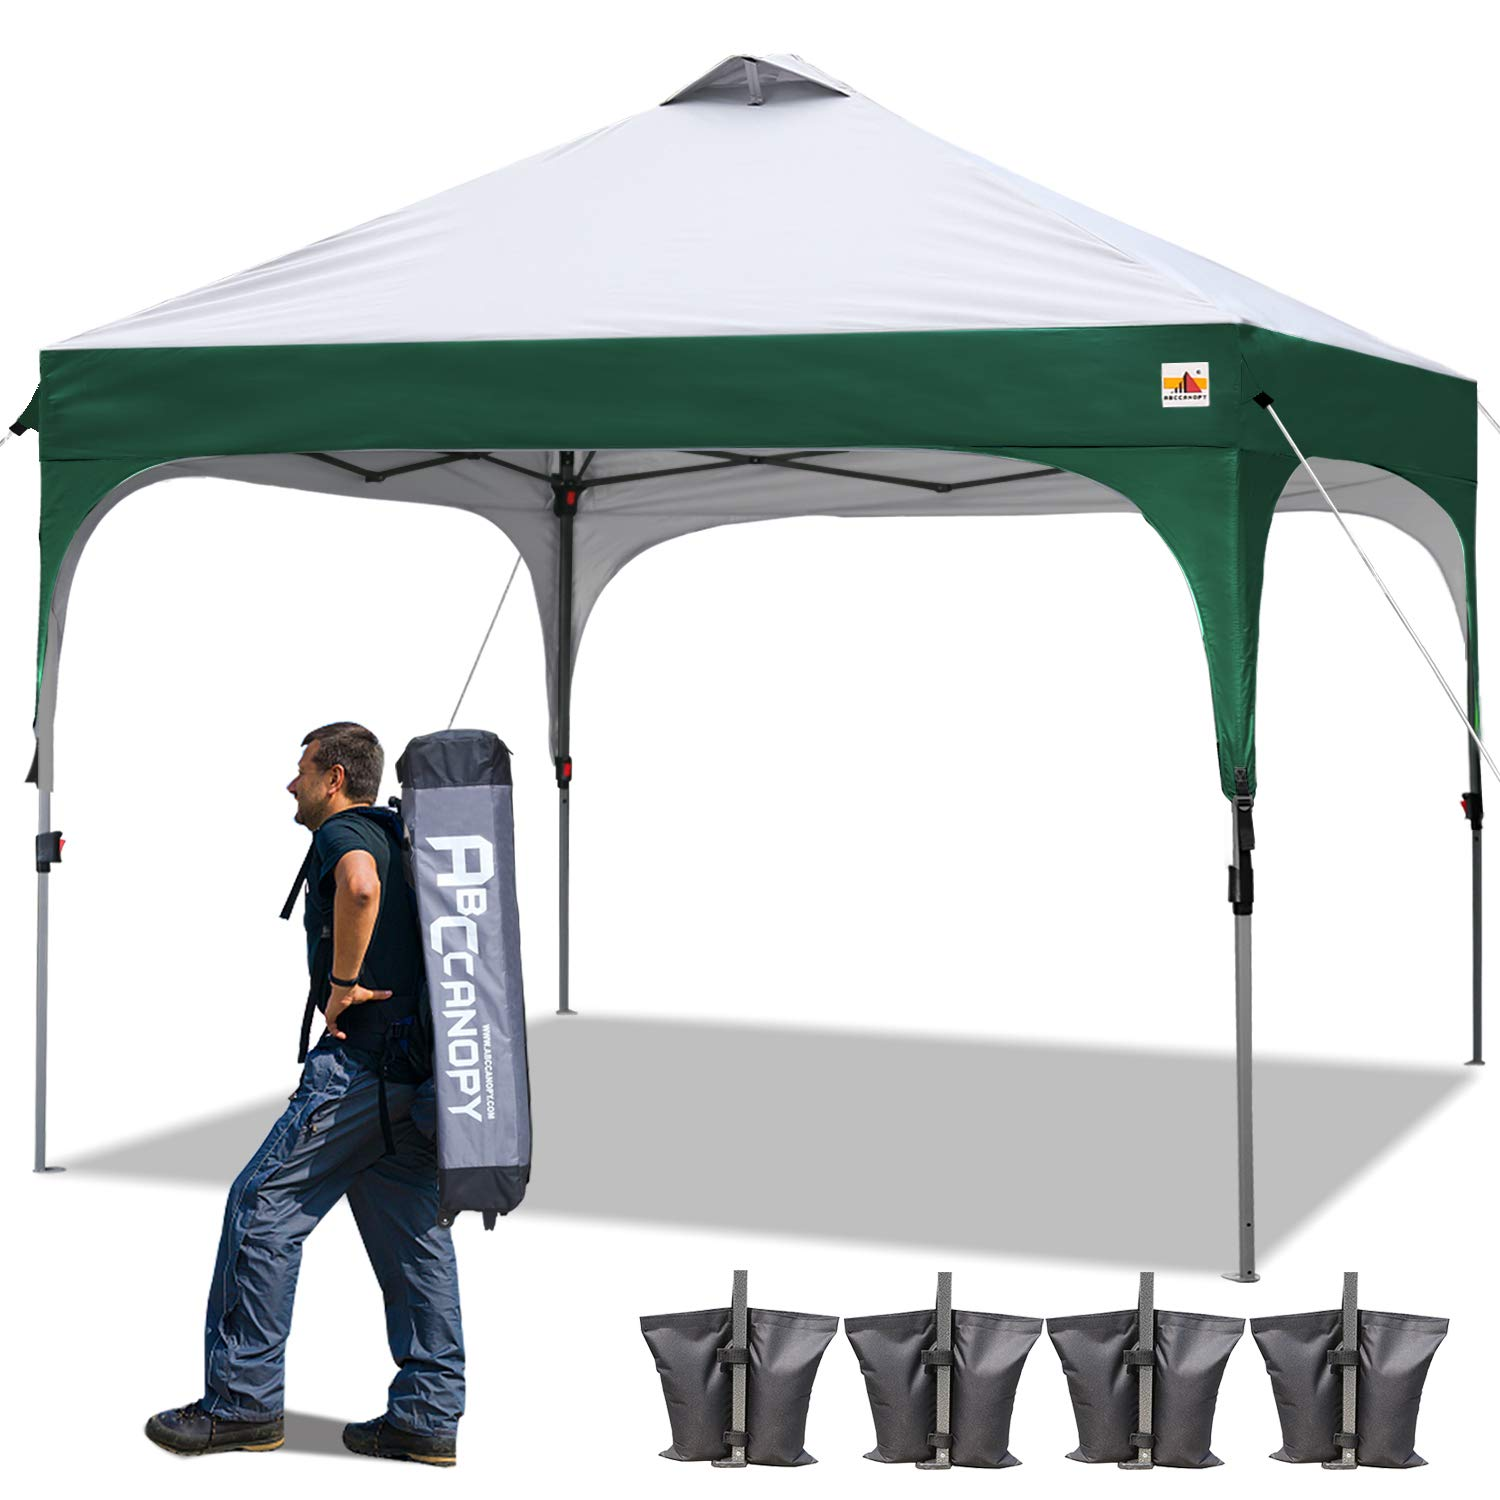 ABCCANOPY Pop Up Canopy Tent 10 x 10 Commercial Canopies Better Air Circulation Beach Canopy Tents with Wheeled Carry Bag, 4 x Ropes& 4 x Stakes, Bonus 4 Weight Bags, Forest Green with Gray